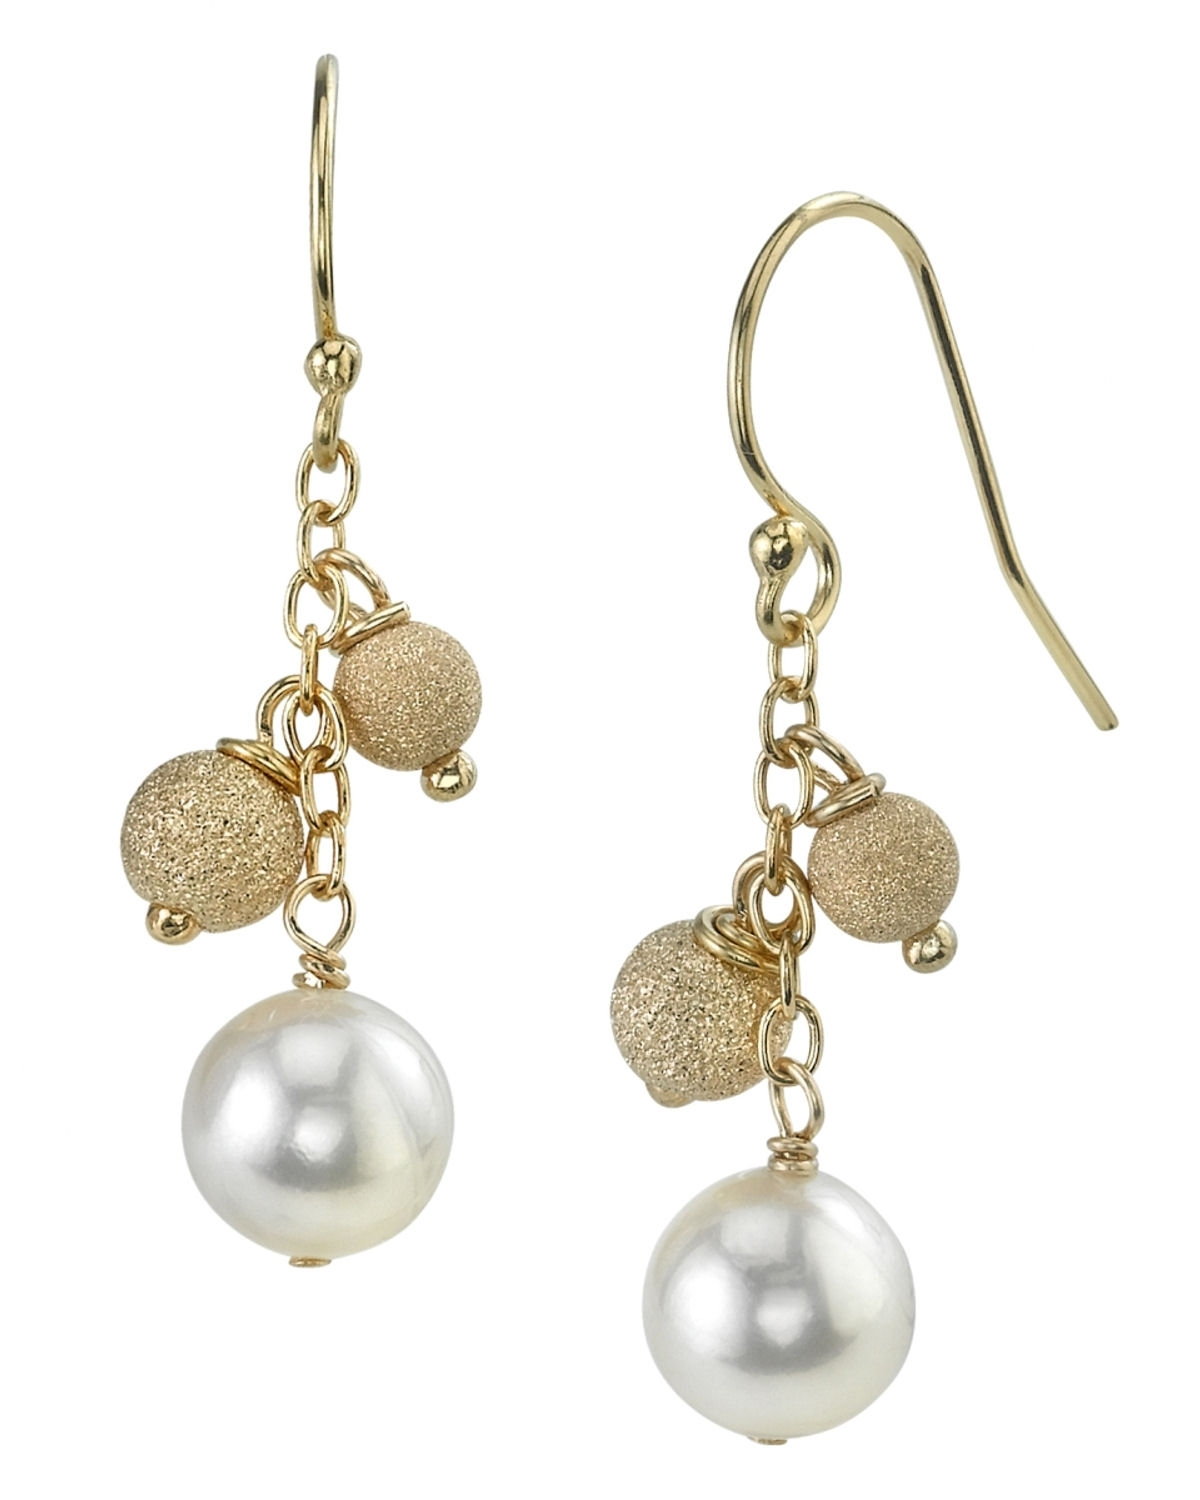 14K Gold 6.0-6.5mm Japanese White Akoya Cultured Pearl Cluster Earrings by The Pearl Source